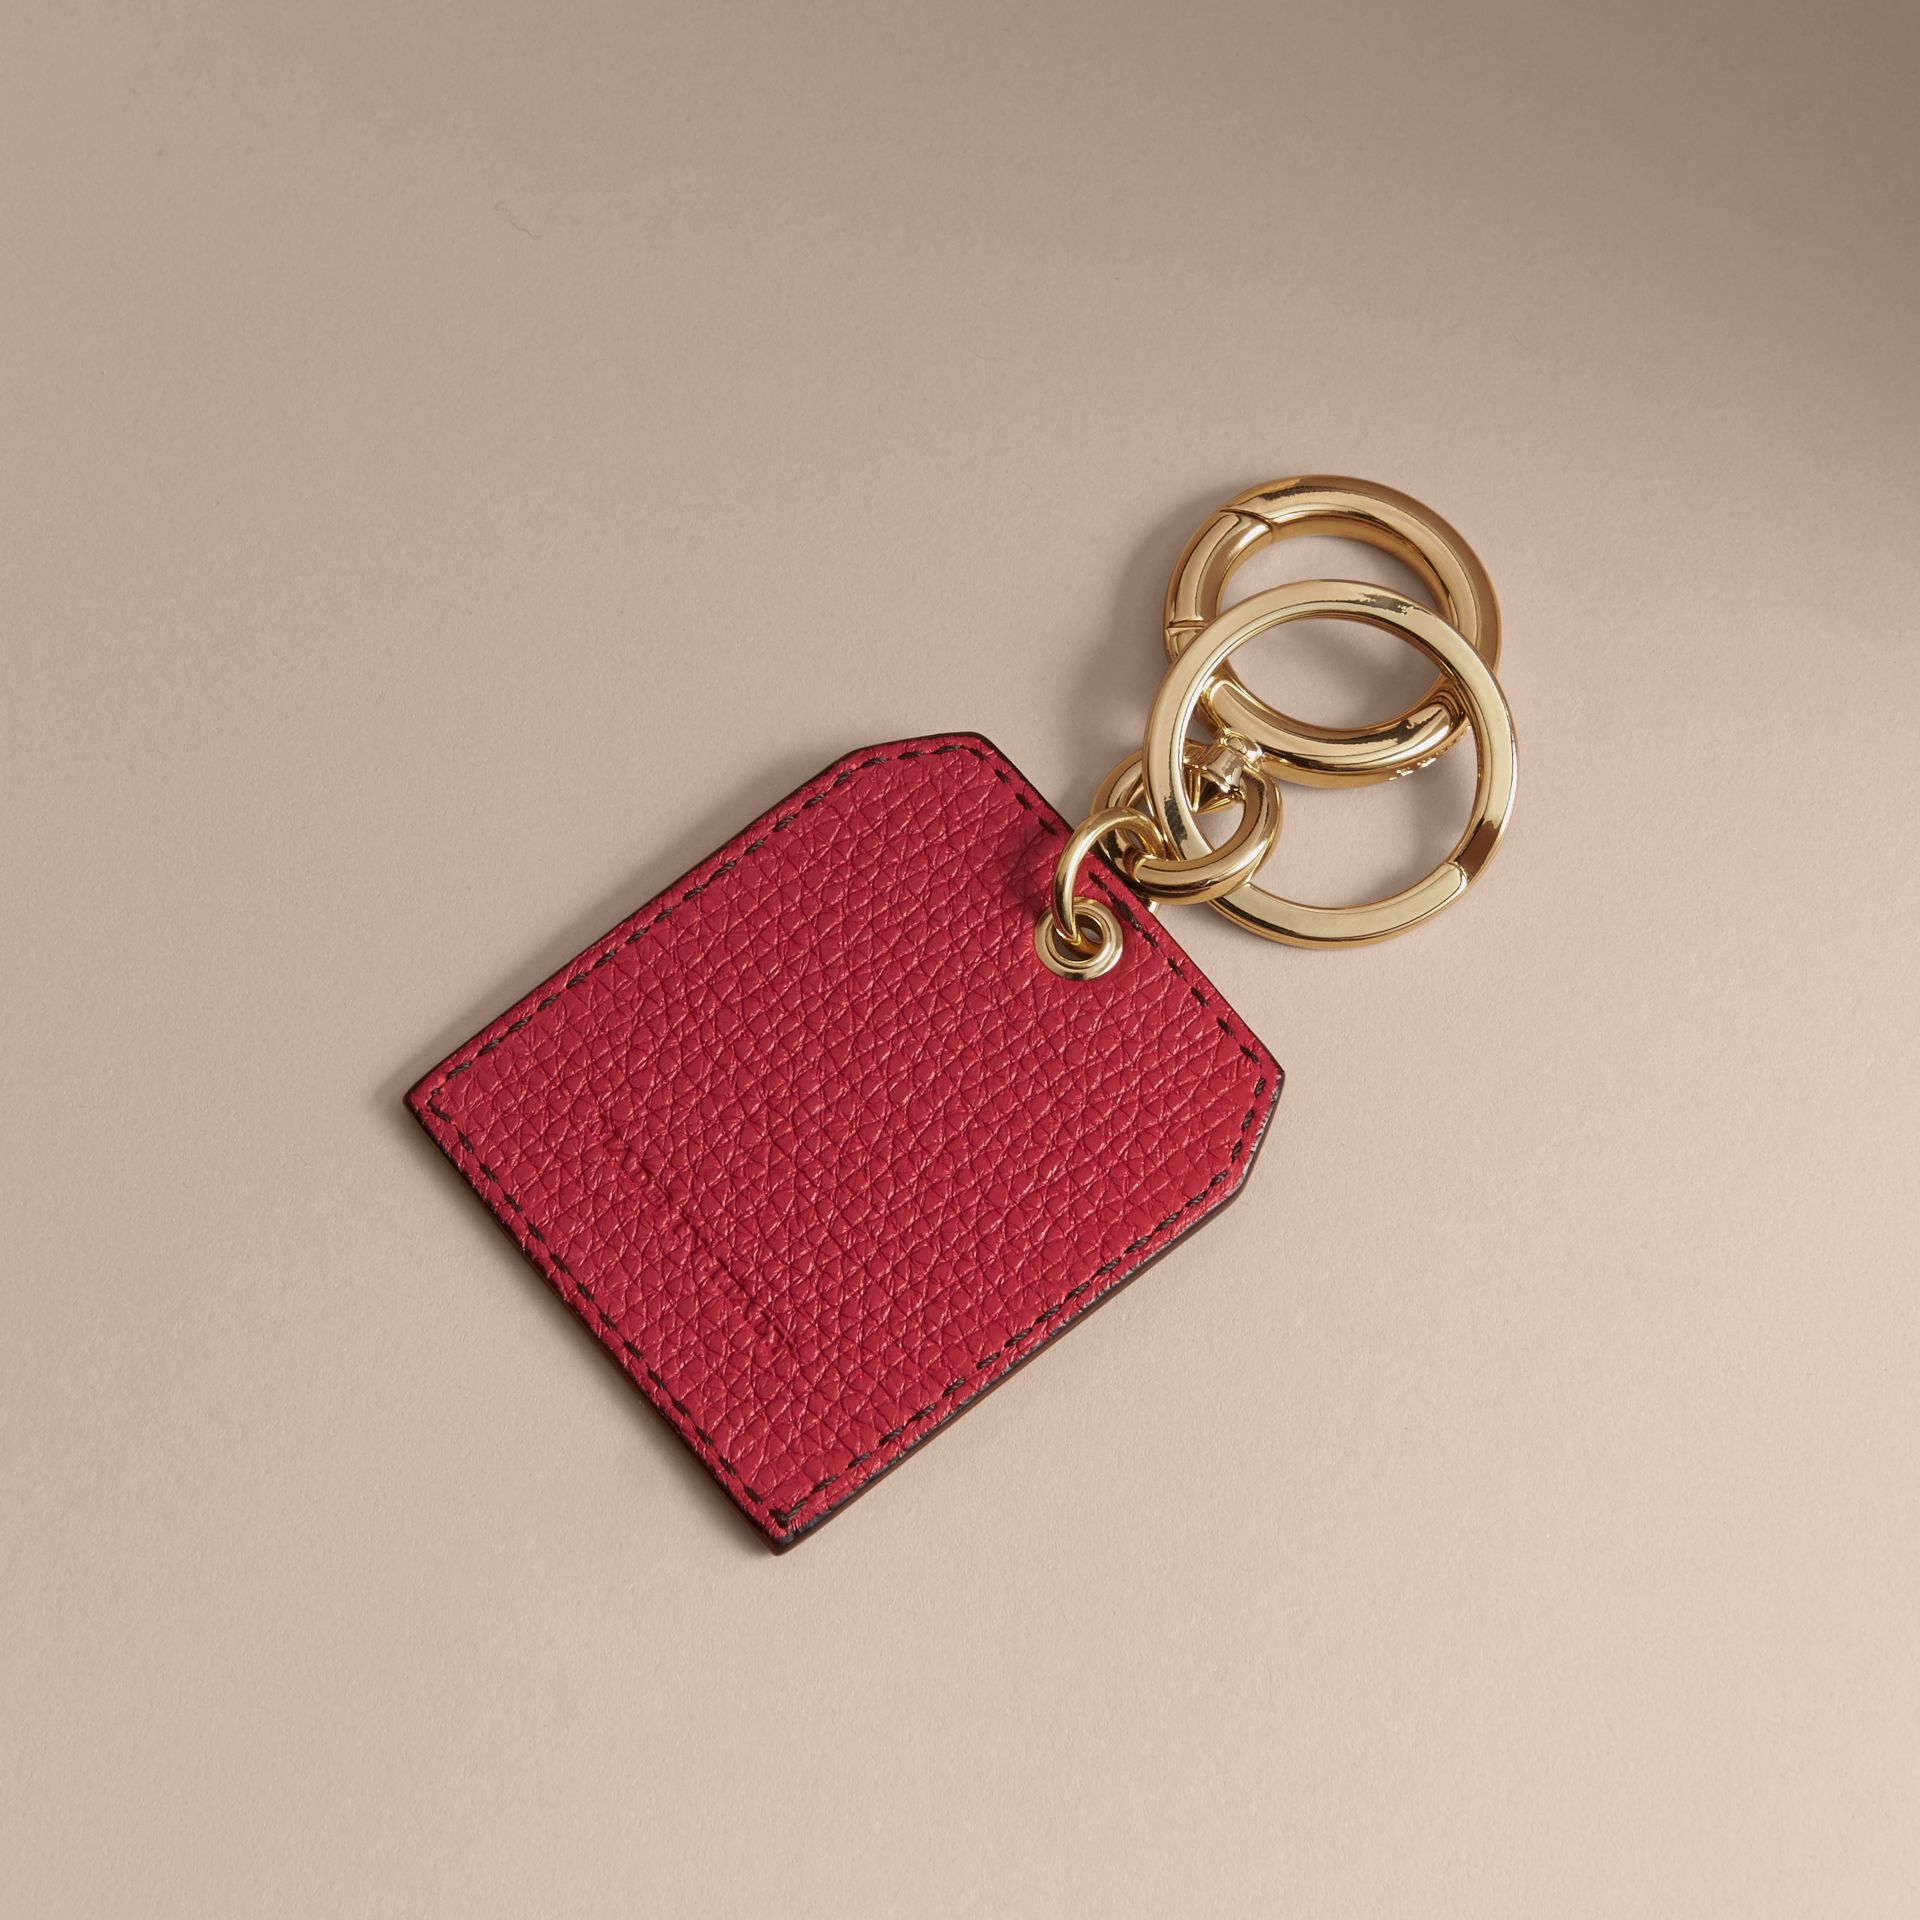 Leather Key Charm in Parade Red - Women | Burberry - gallery image 4